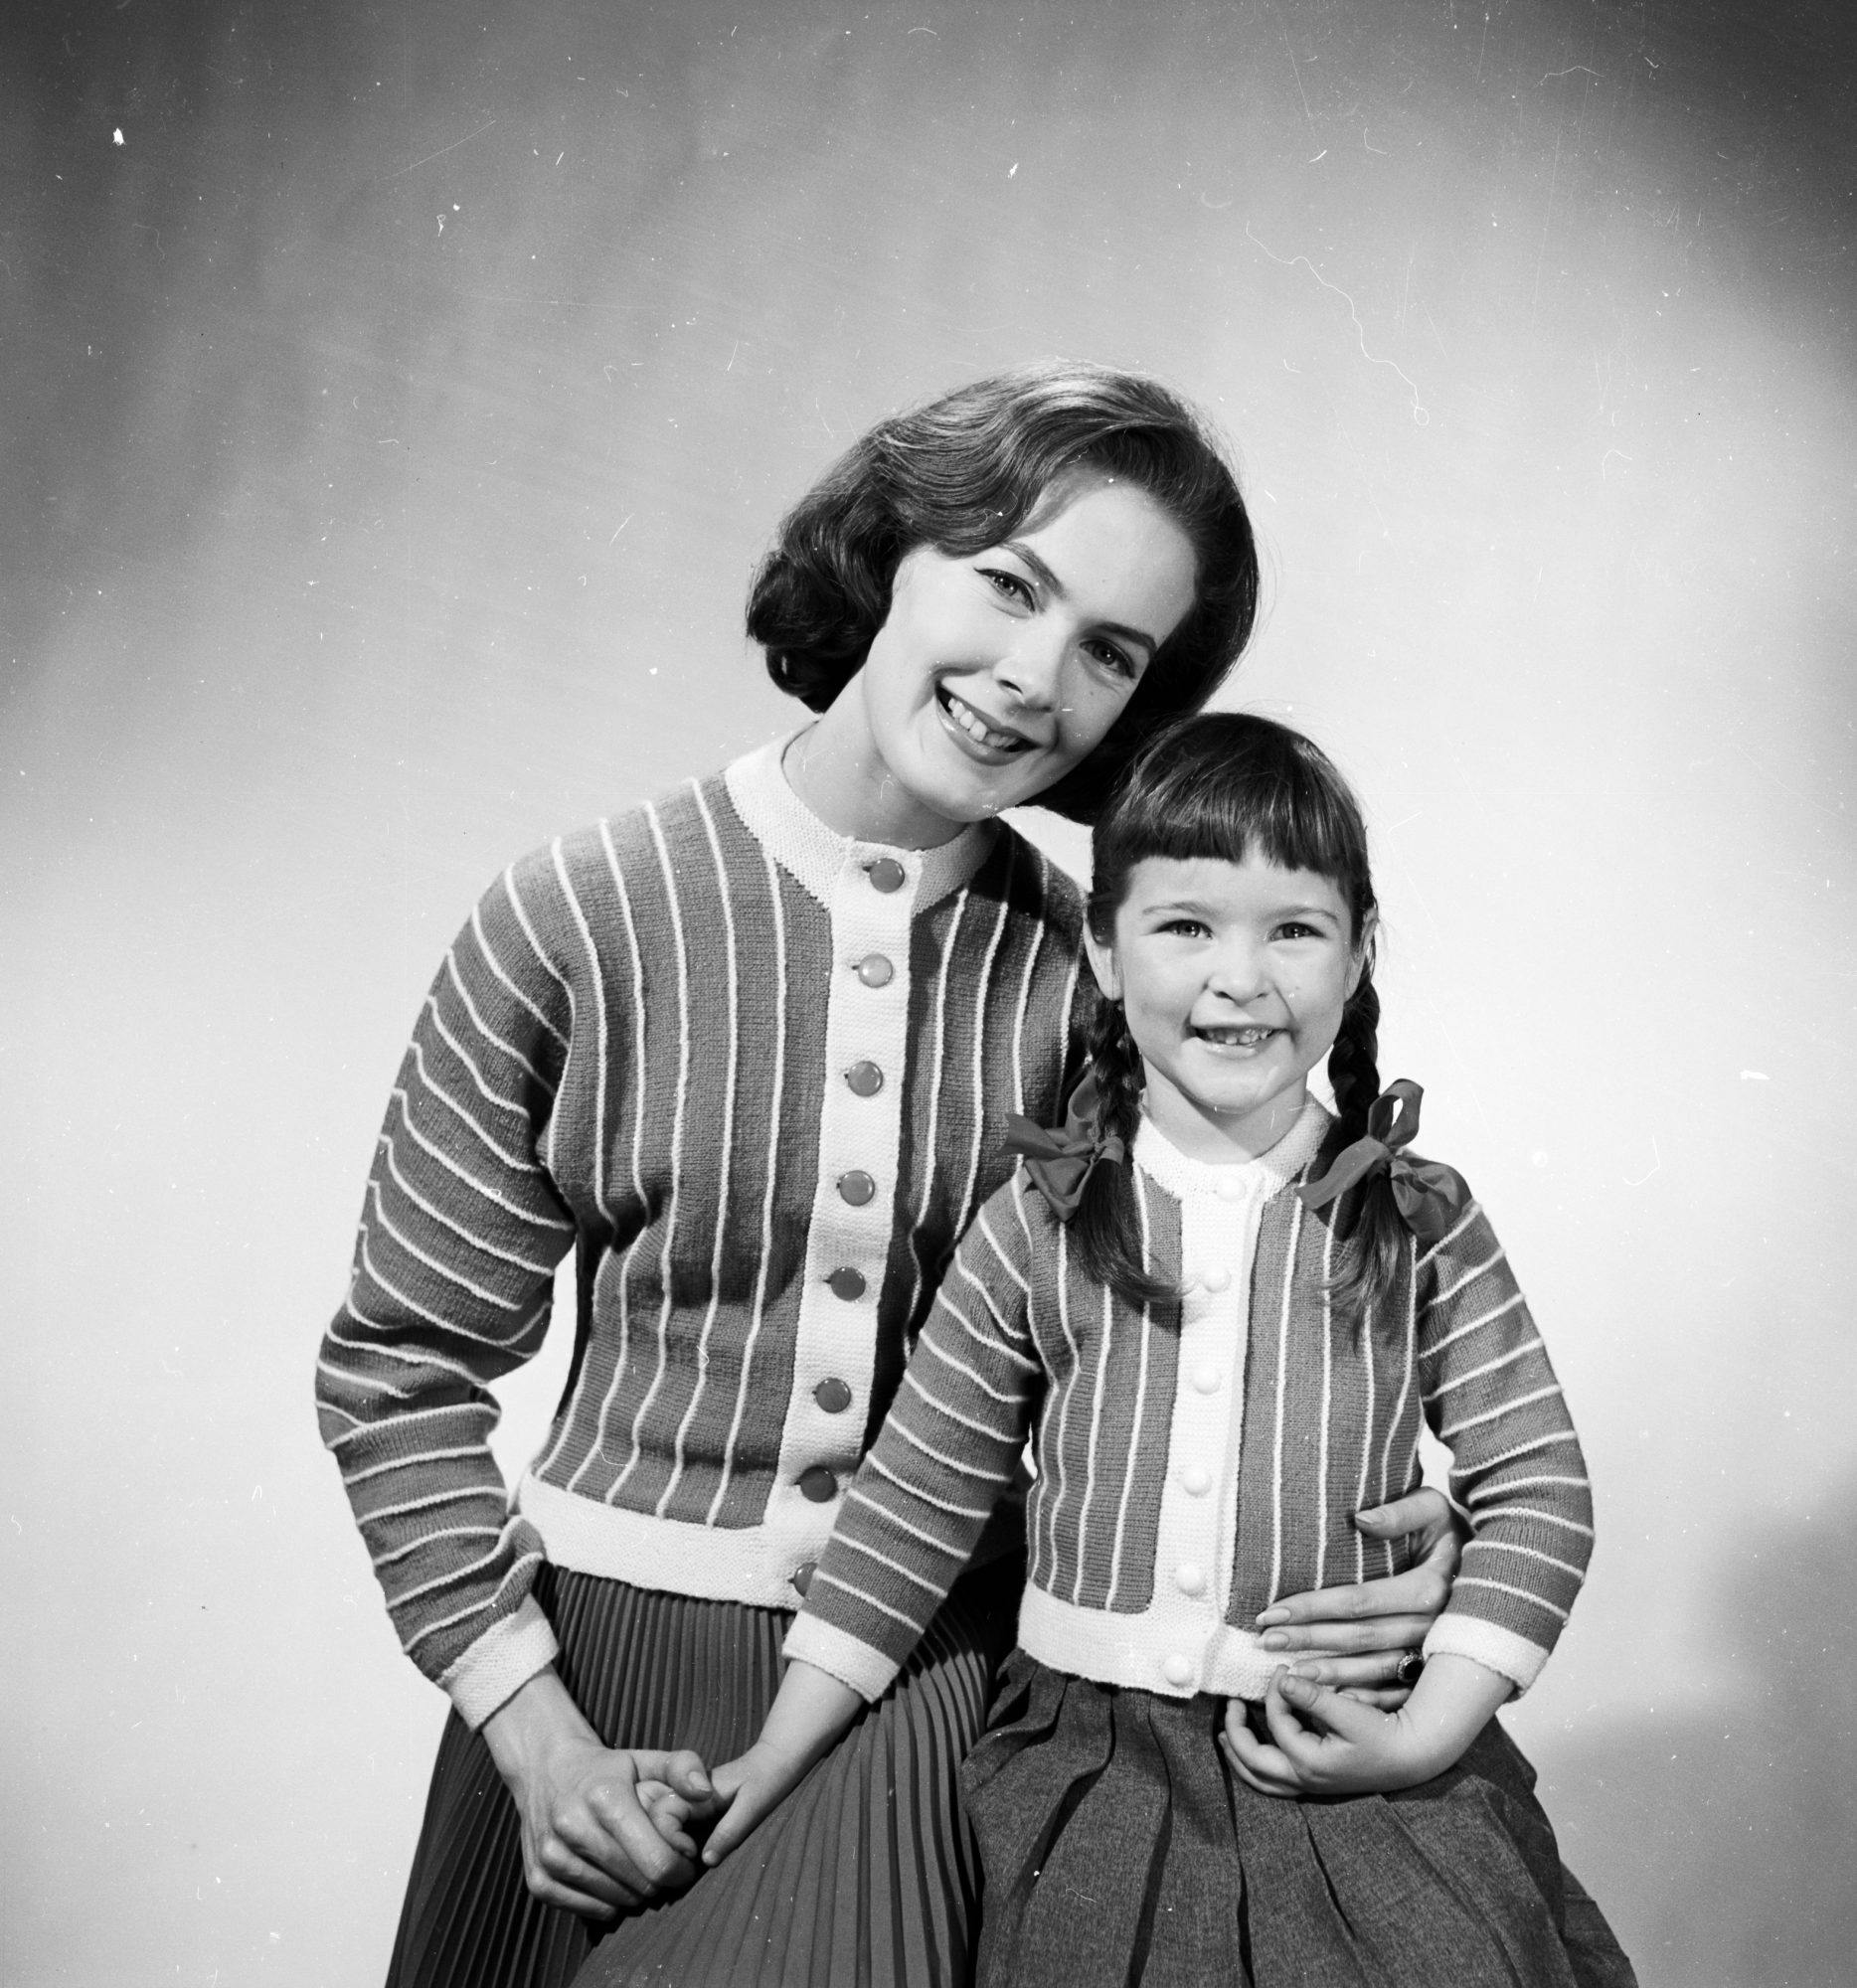 Mother Daughter in Matching Cardigans